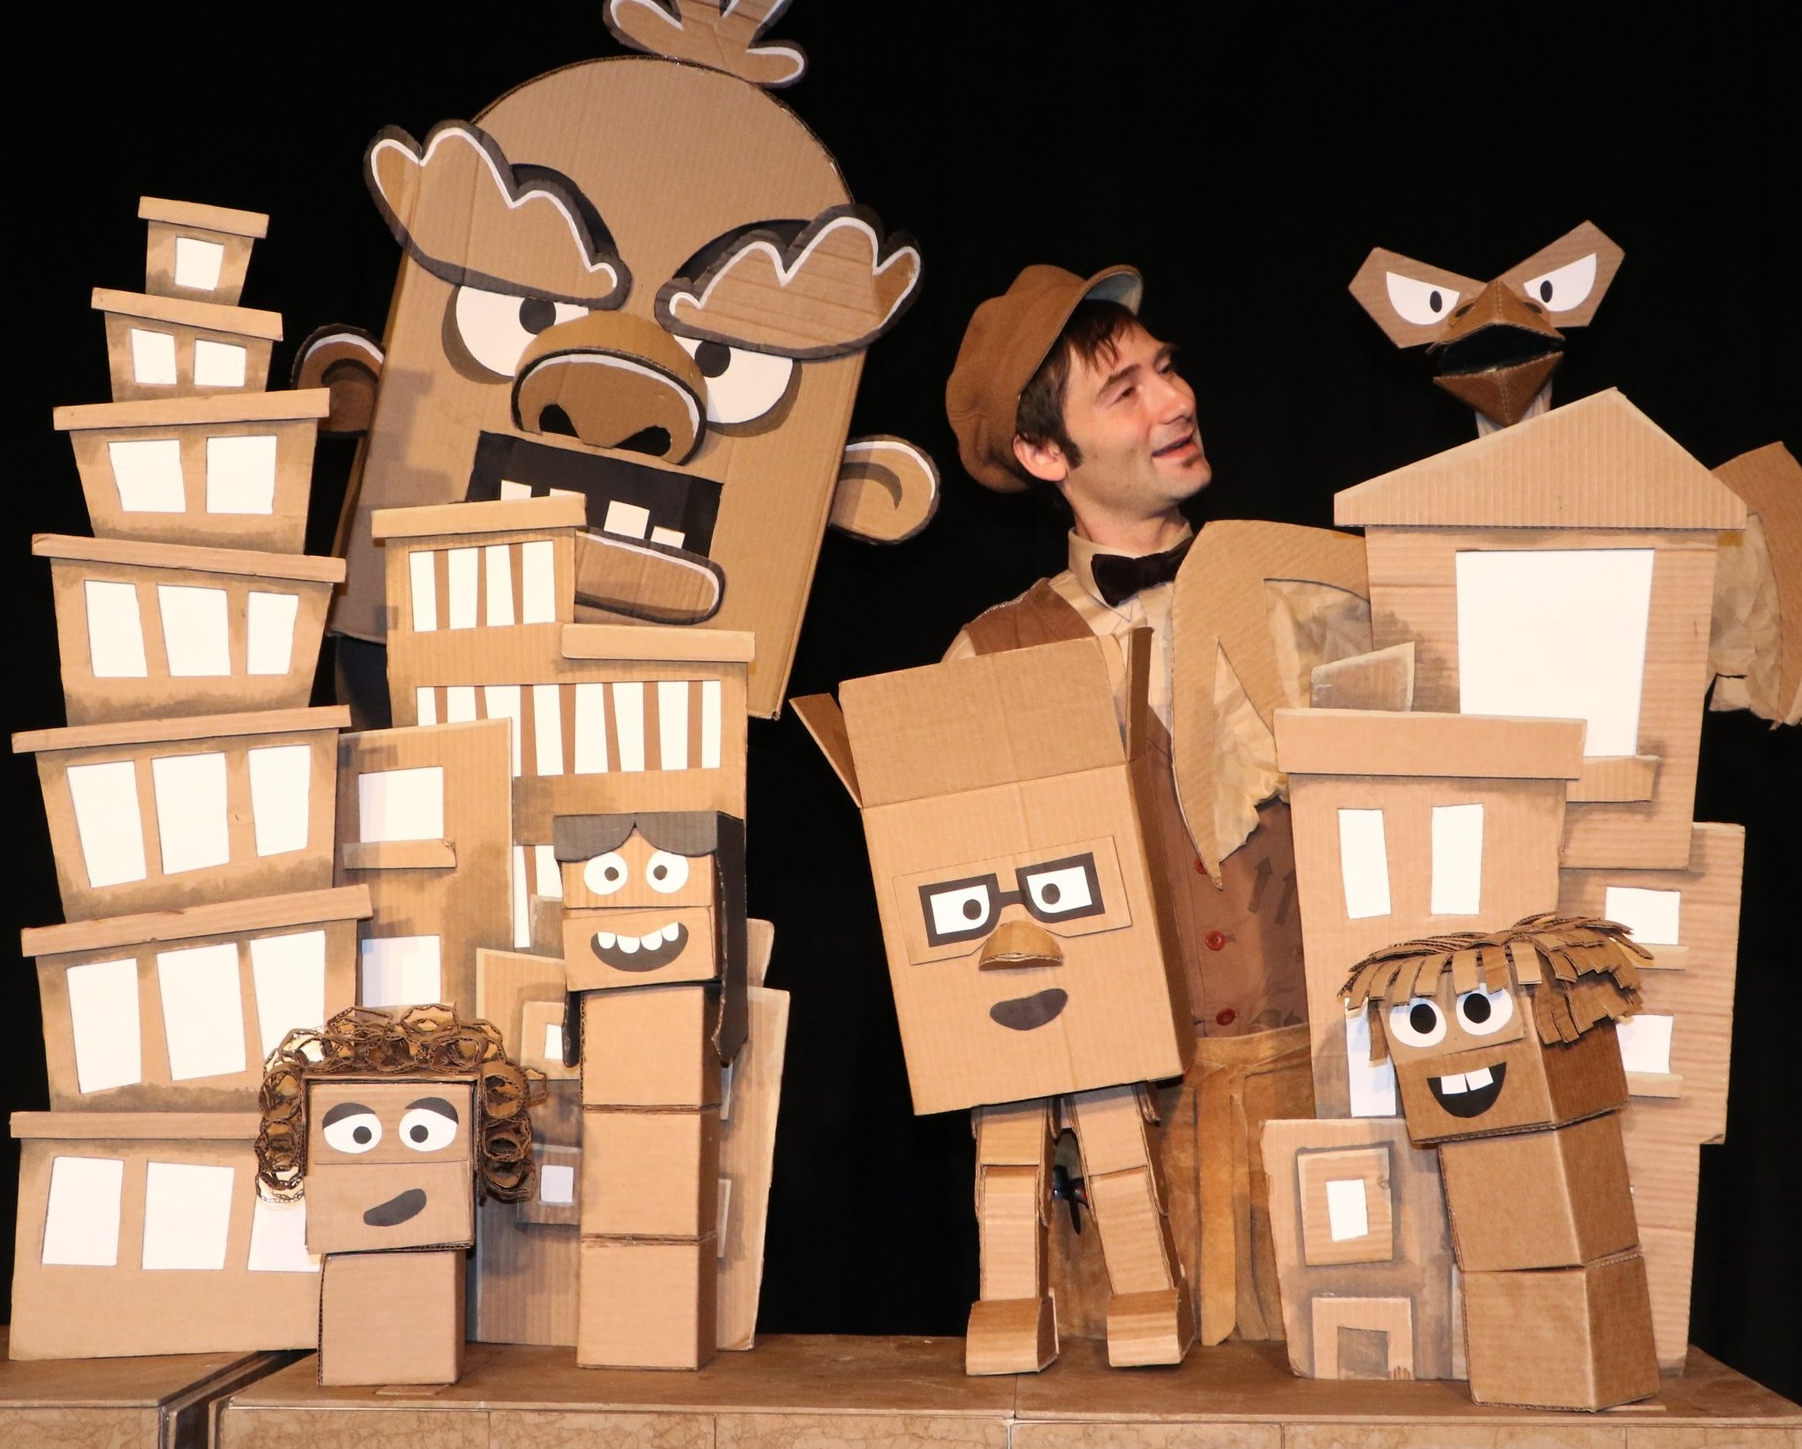 Paper Heart Puppets - Brad Shur, founder of Paper Heart Puppets has toured around the US and beyond with original works of puppet theater designed to wake up your imagination. As a puppet maker, performer and teaching artist, Brad has been working with puppets since 1999. Paper Heart Puppets was founded in Poughkeepsie, NY in 2017.paperheartpuppets.com